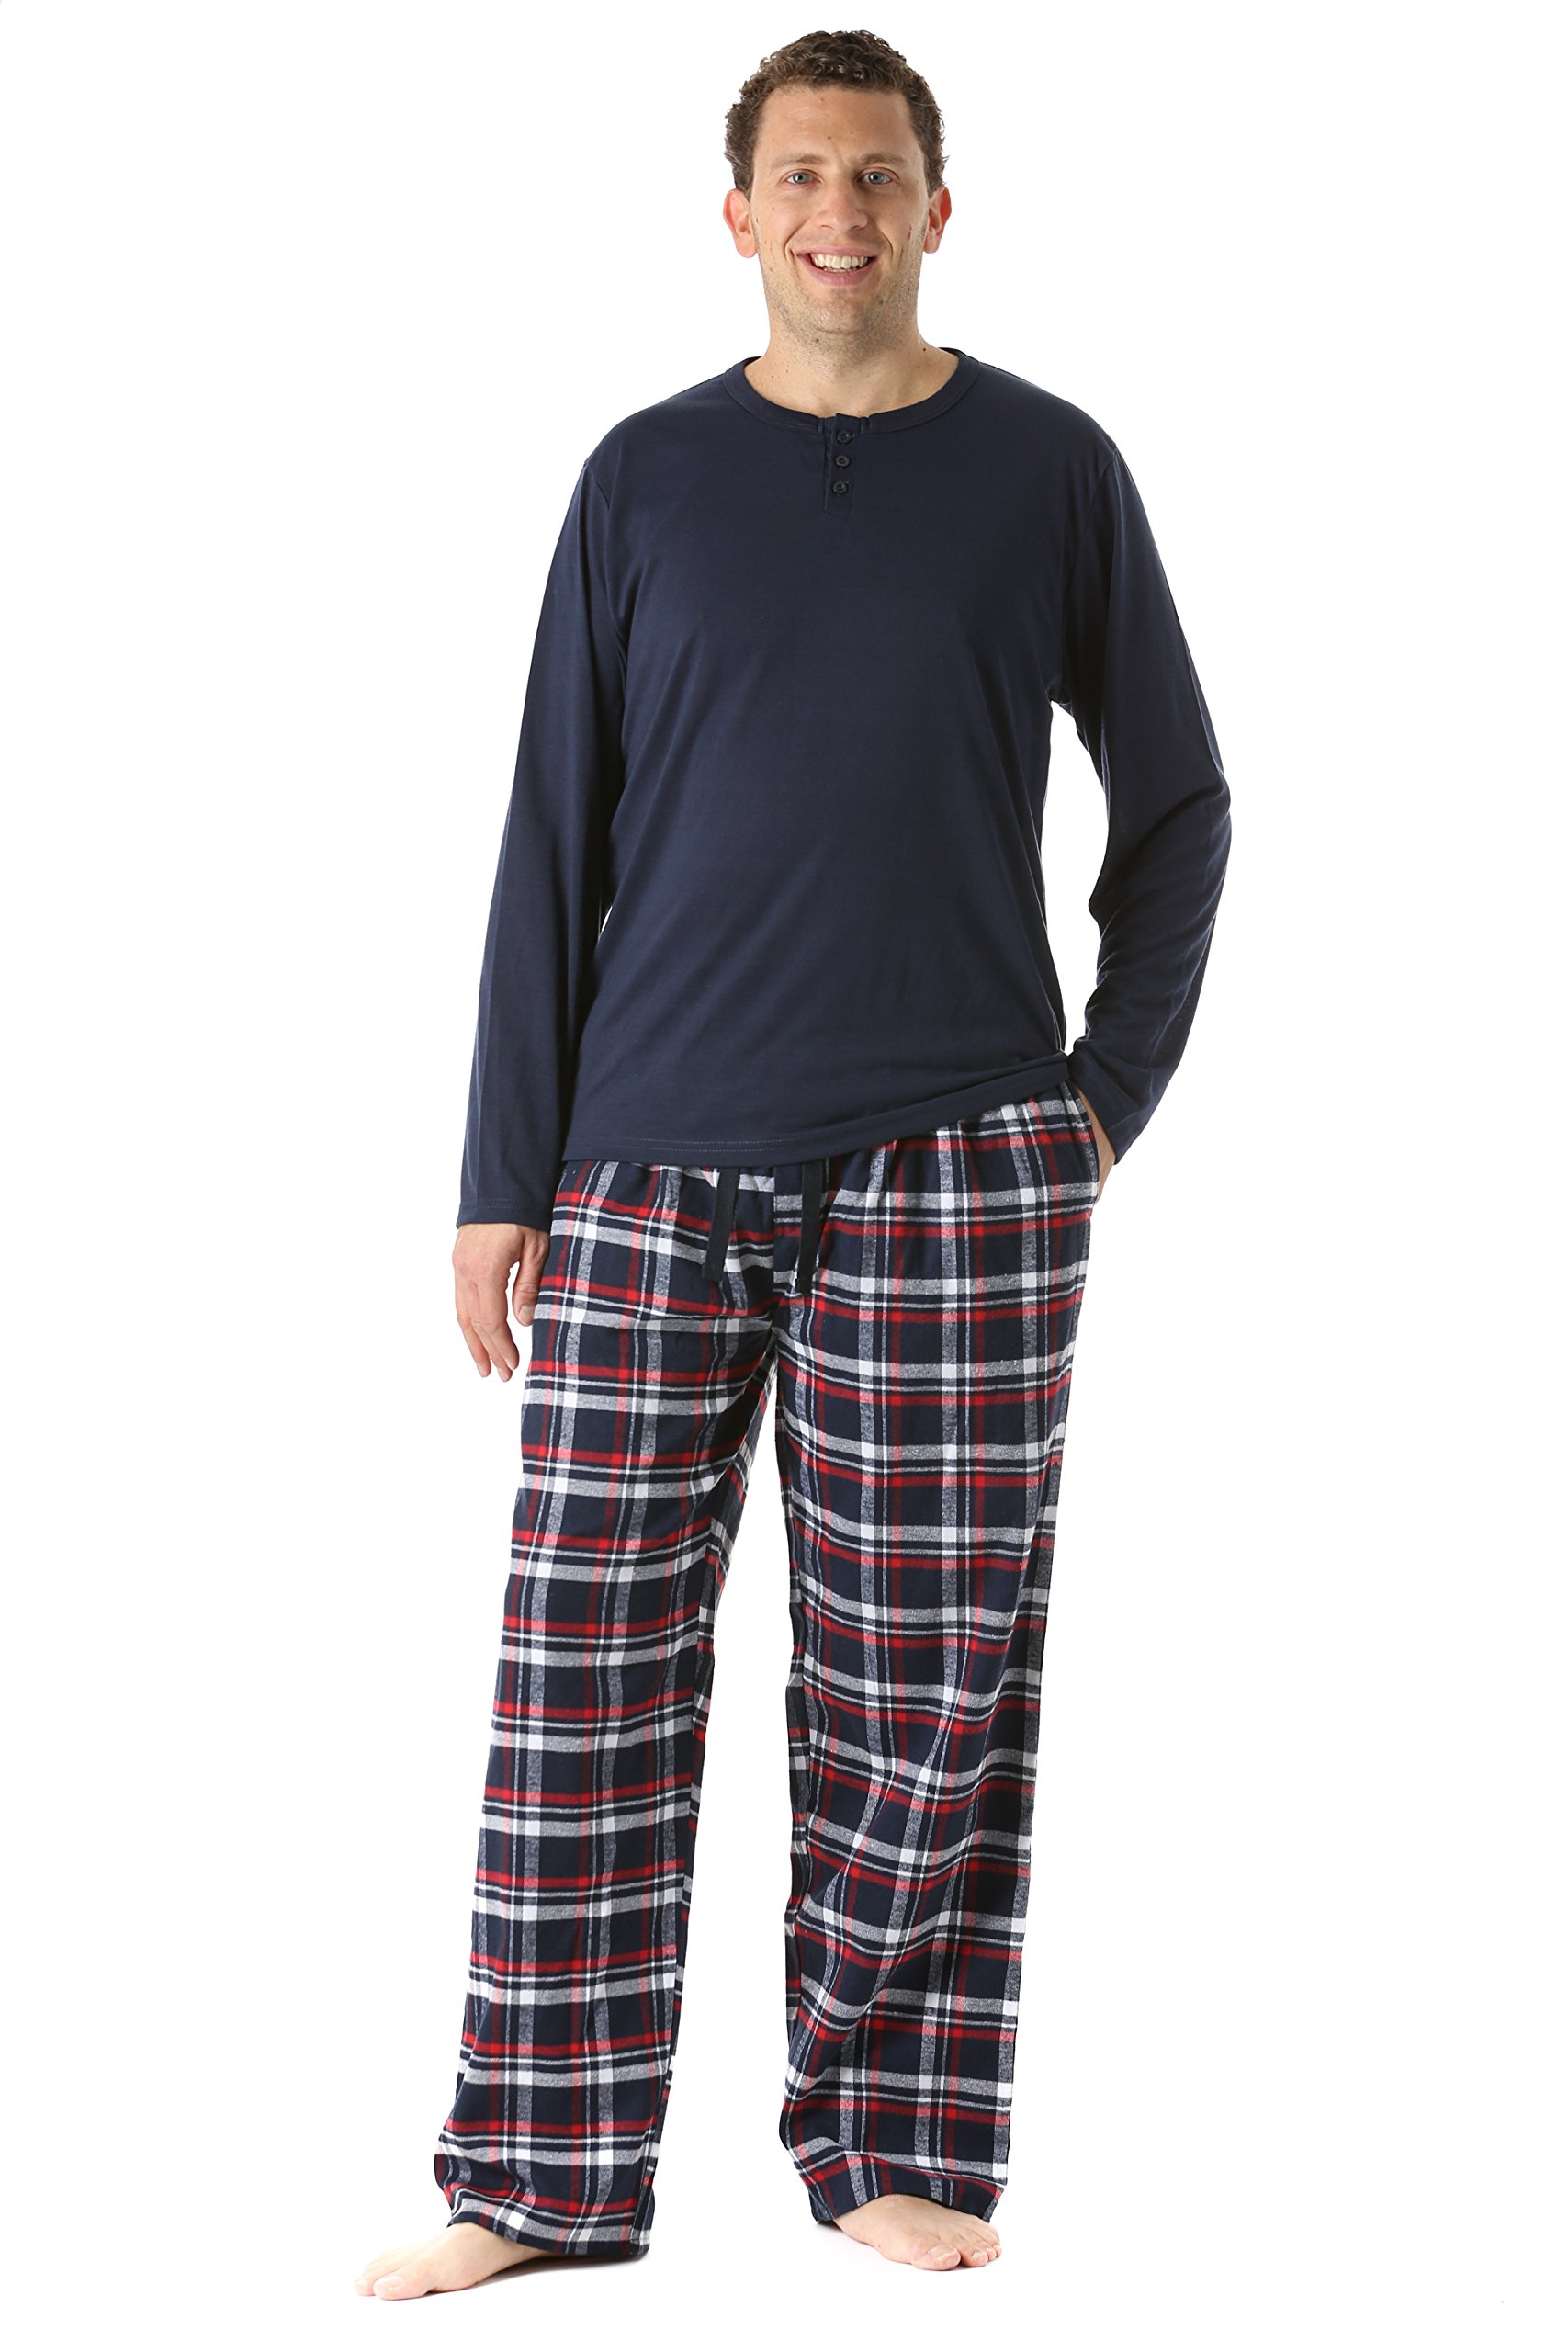 #FollowMe 44911-6-M Pajama Pants Set for Men/Sleepwear/PJs,Plaid 6,Medium